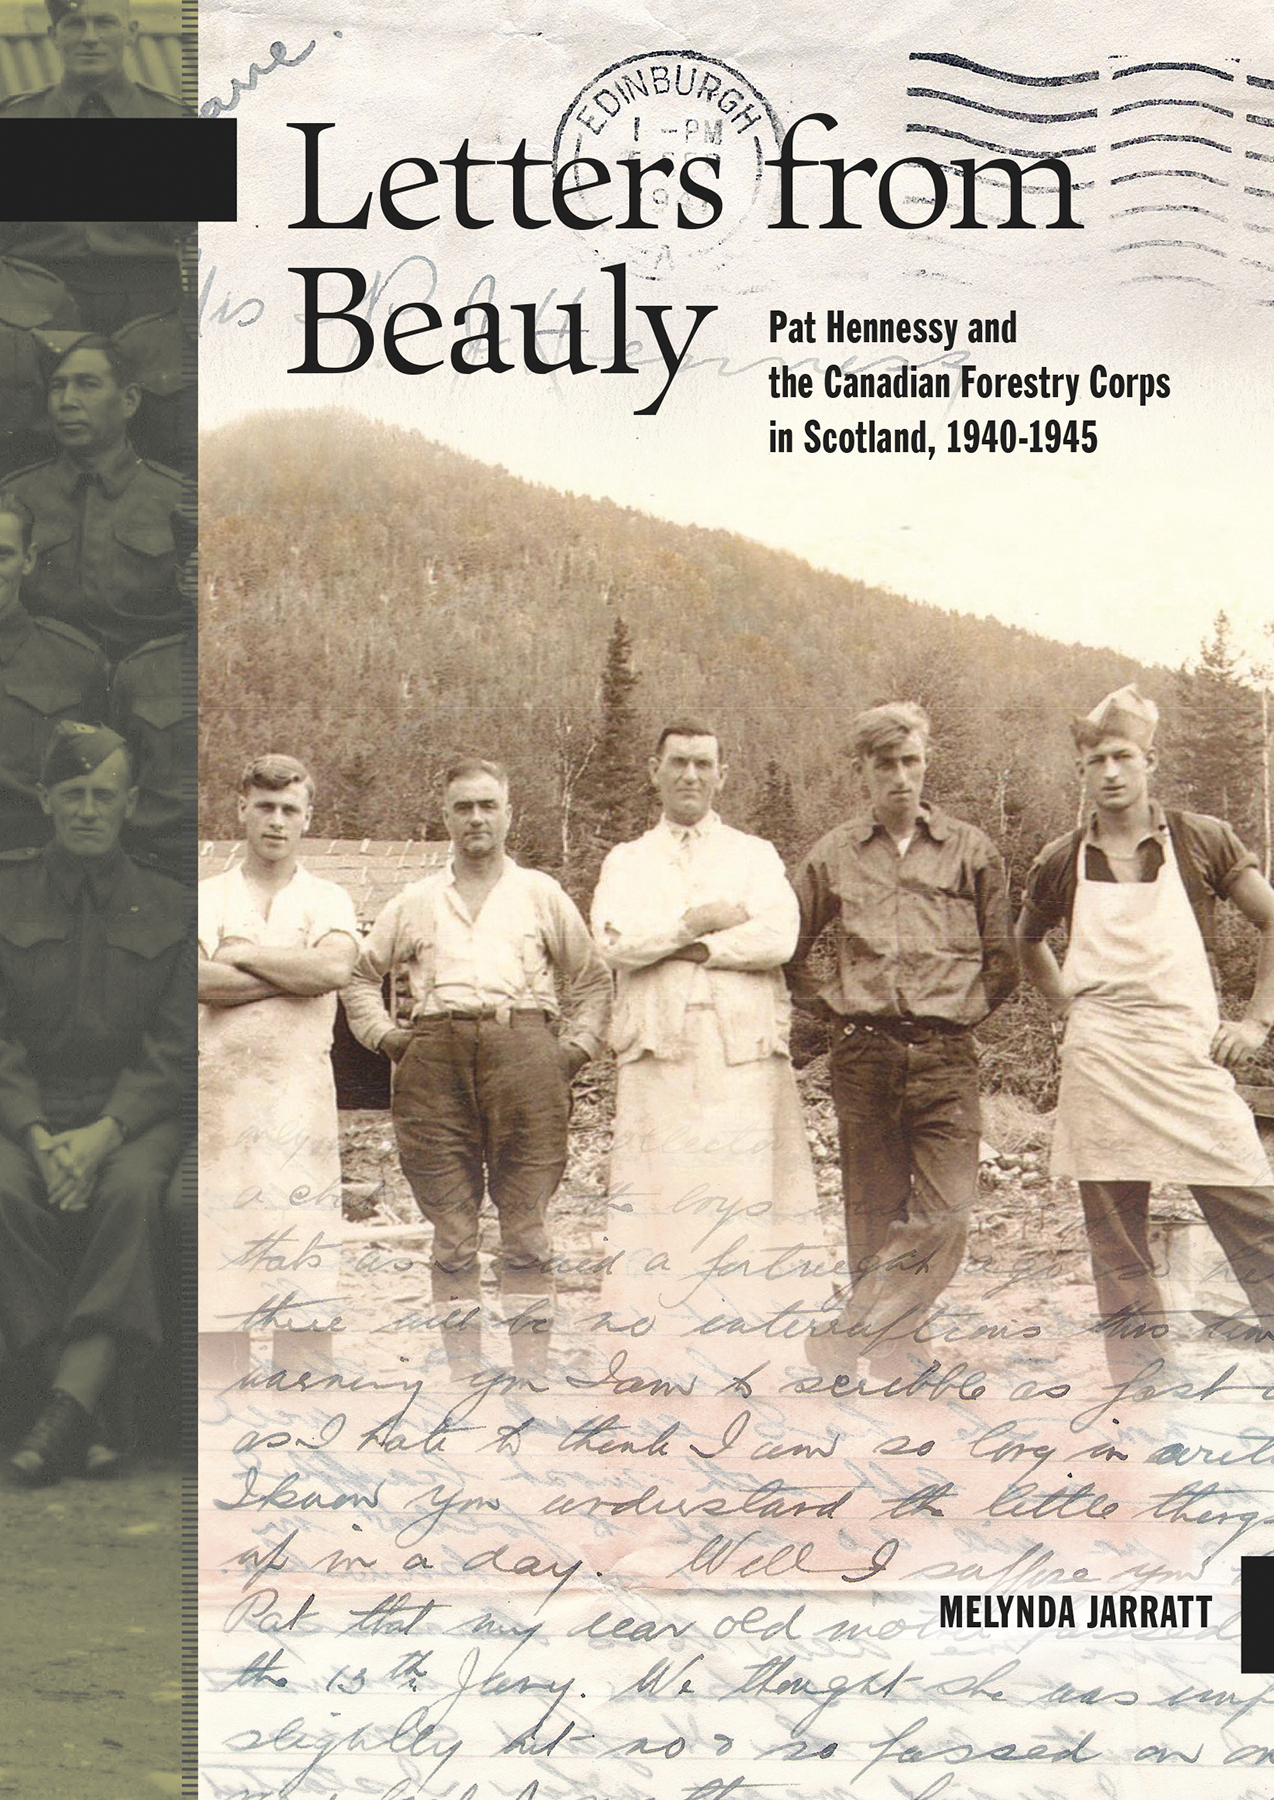 Letters From Beauly Pat Hennessy and the Canadian Forestry Corps